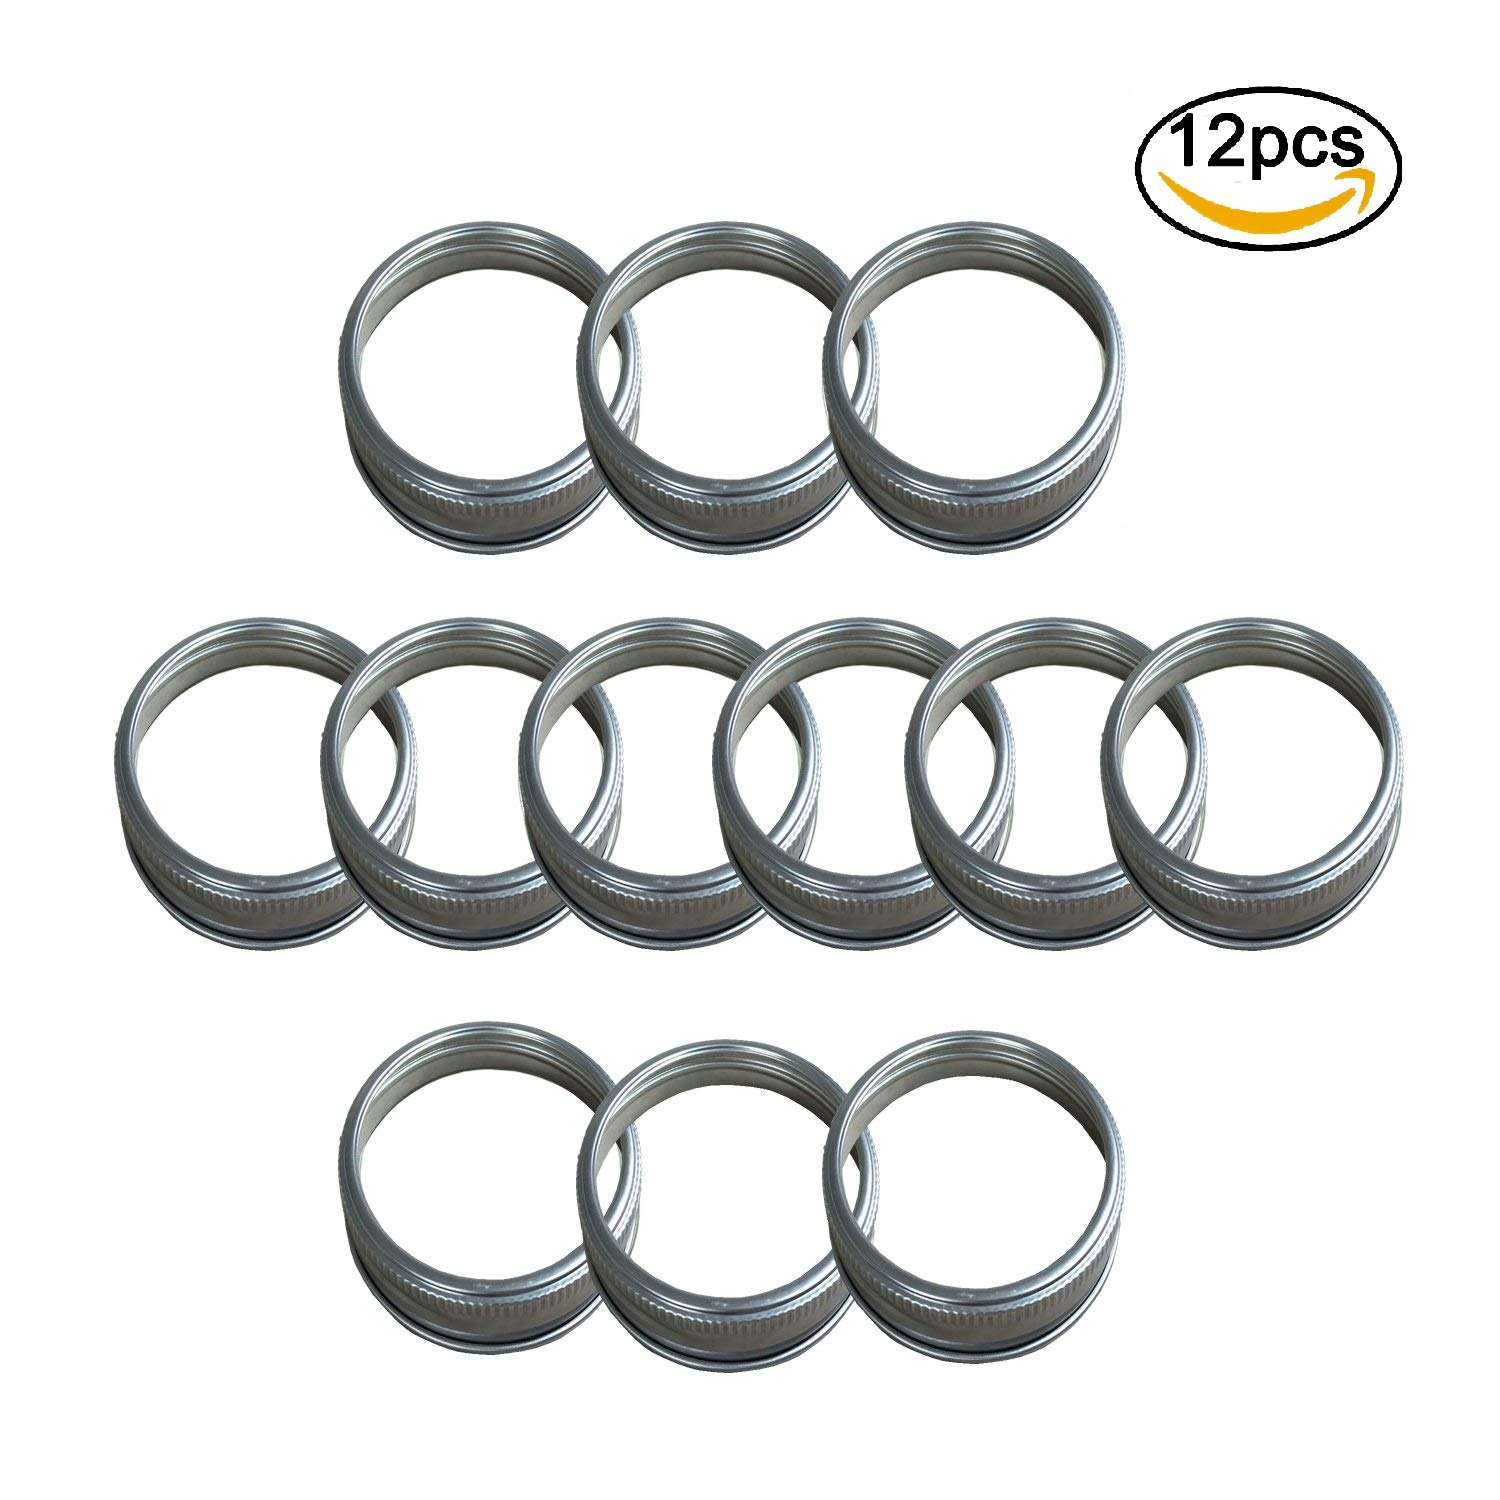 THINKCHANCES Stainless Steel Rust Resistant Bands/Rings for Mason, Ball, Canning Jars (12 Pack, Regular Mouth)